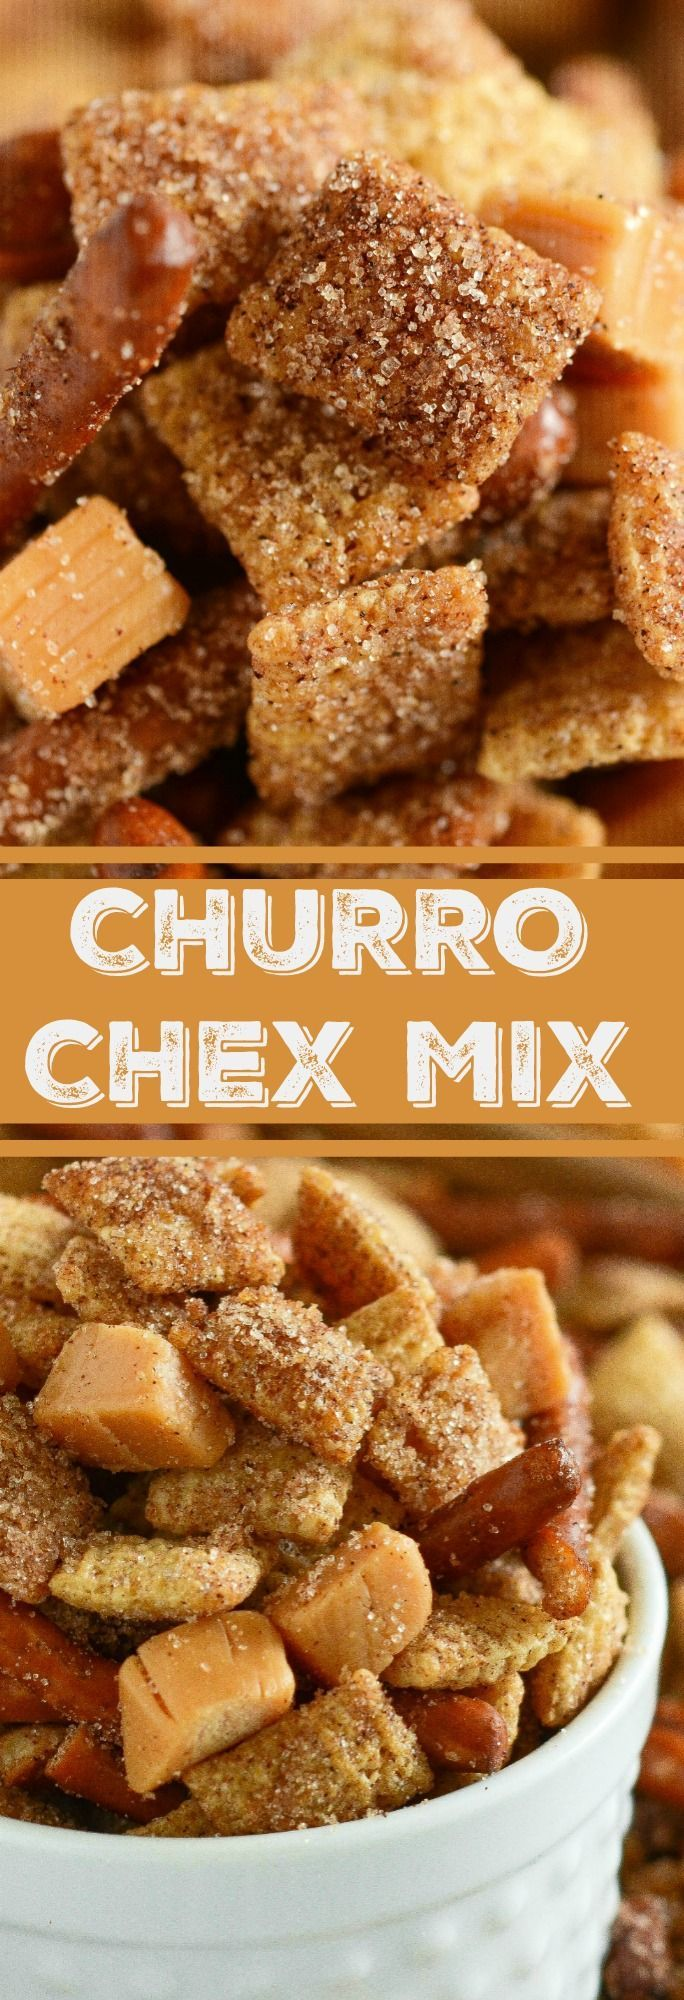 Churro Chex Mix: is absolutely addicting with it's sweet cinnamon sugar coated chex mix, salted pretzels and caramel squares all mixed together in one bite!